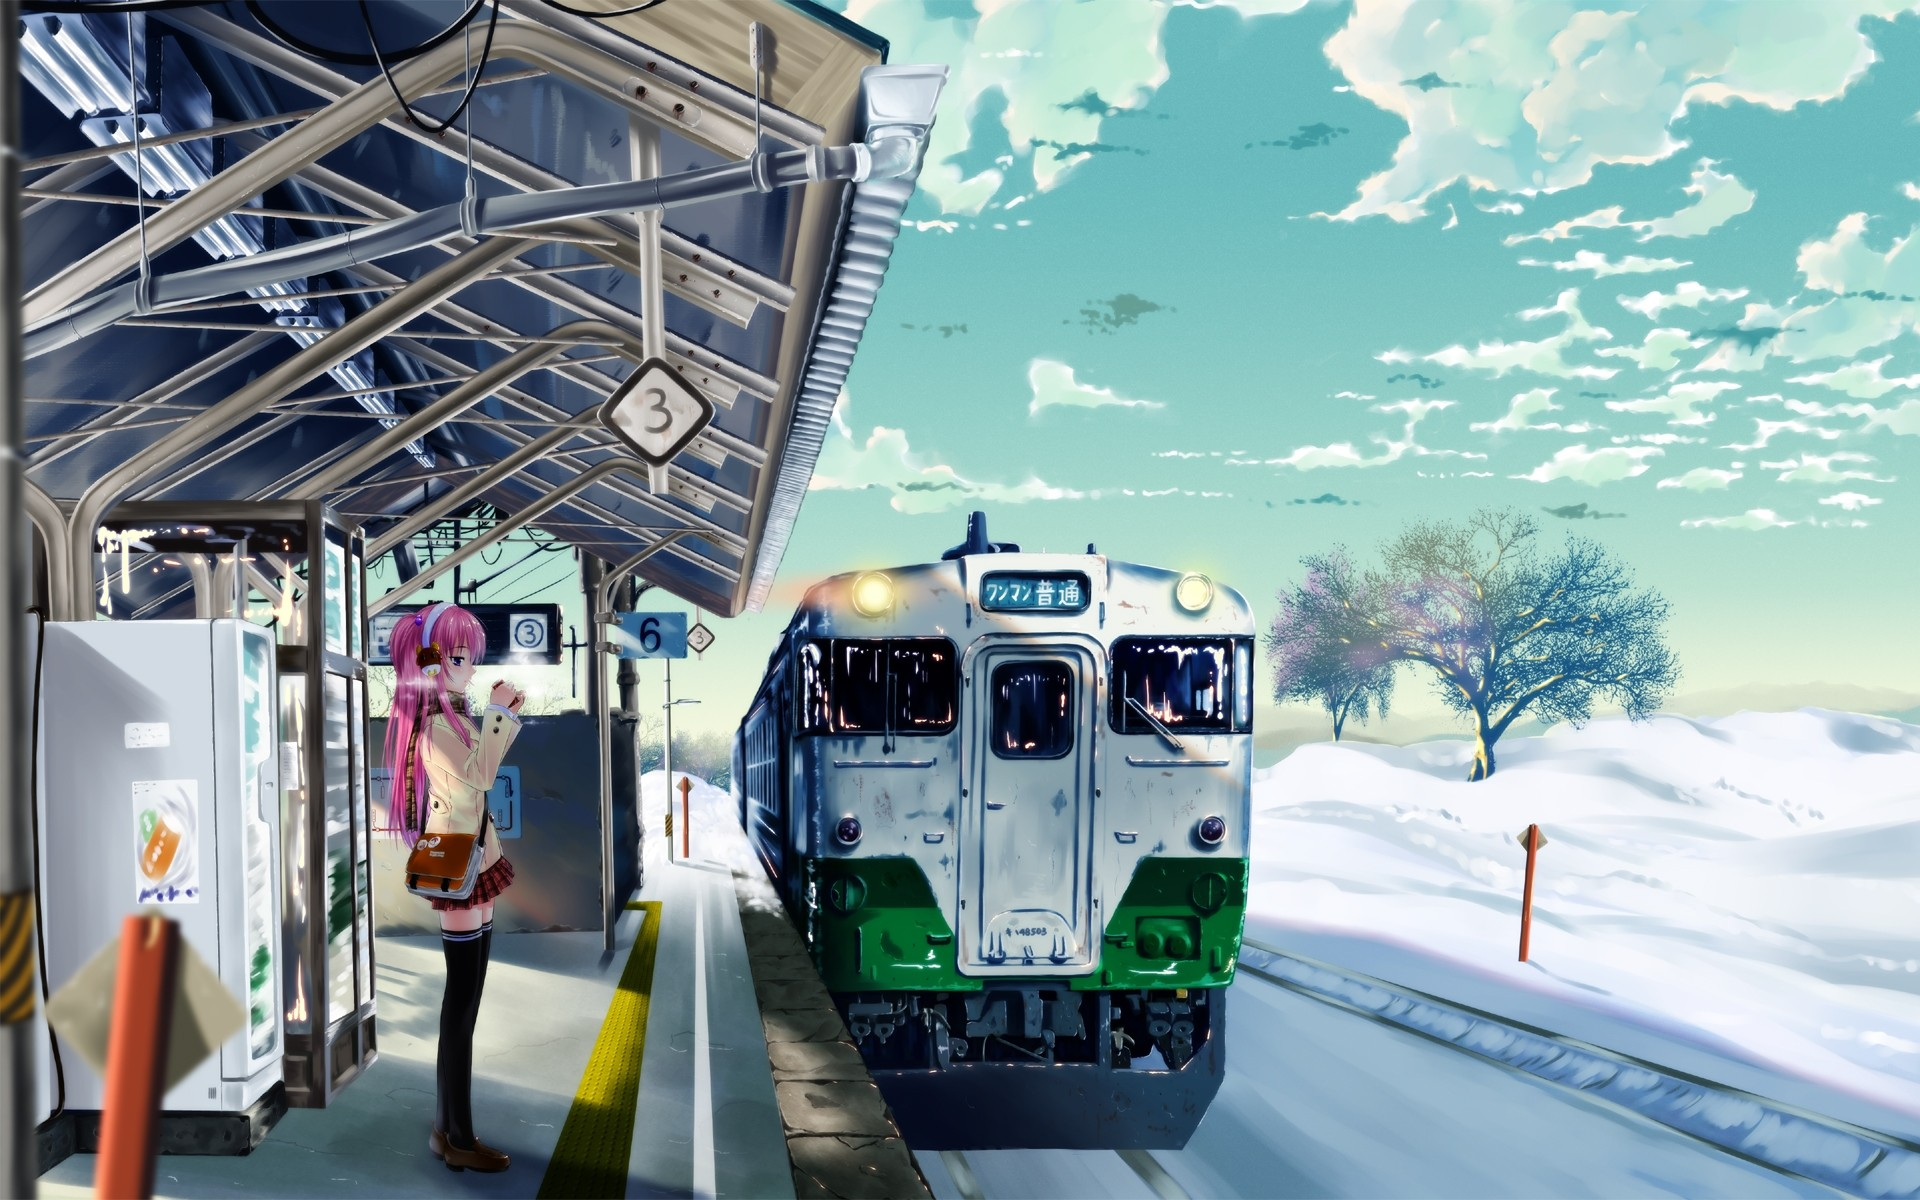 Winter Anime Train Station Girl